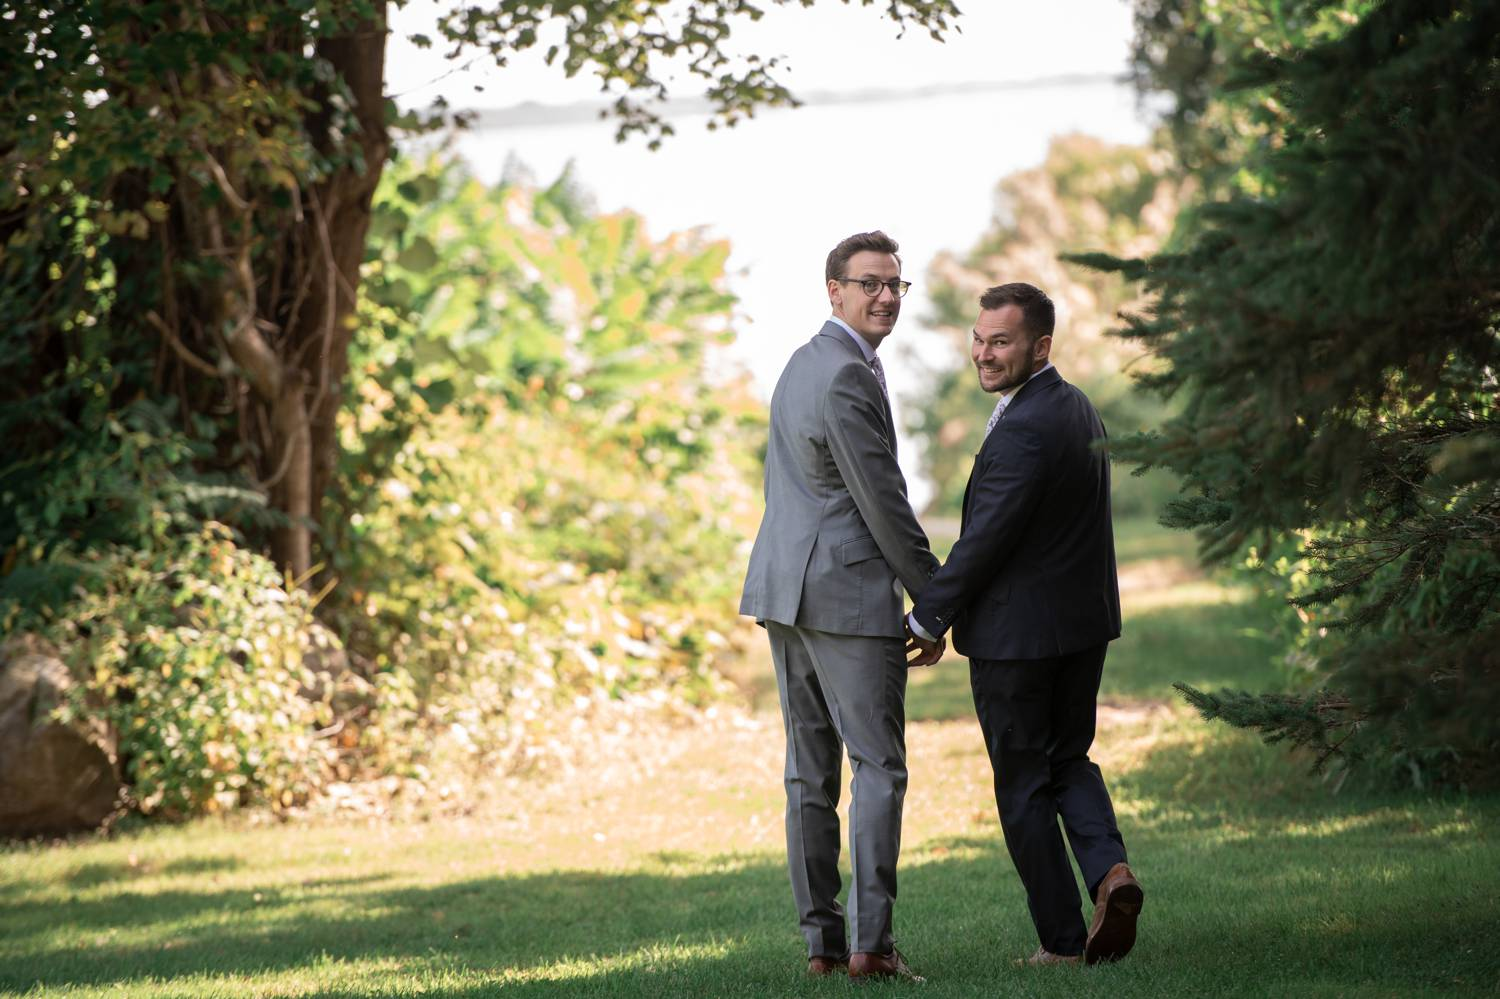 Two grooms stroll across a broad lawn, smiling as they look back over their shoulders